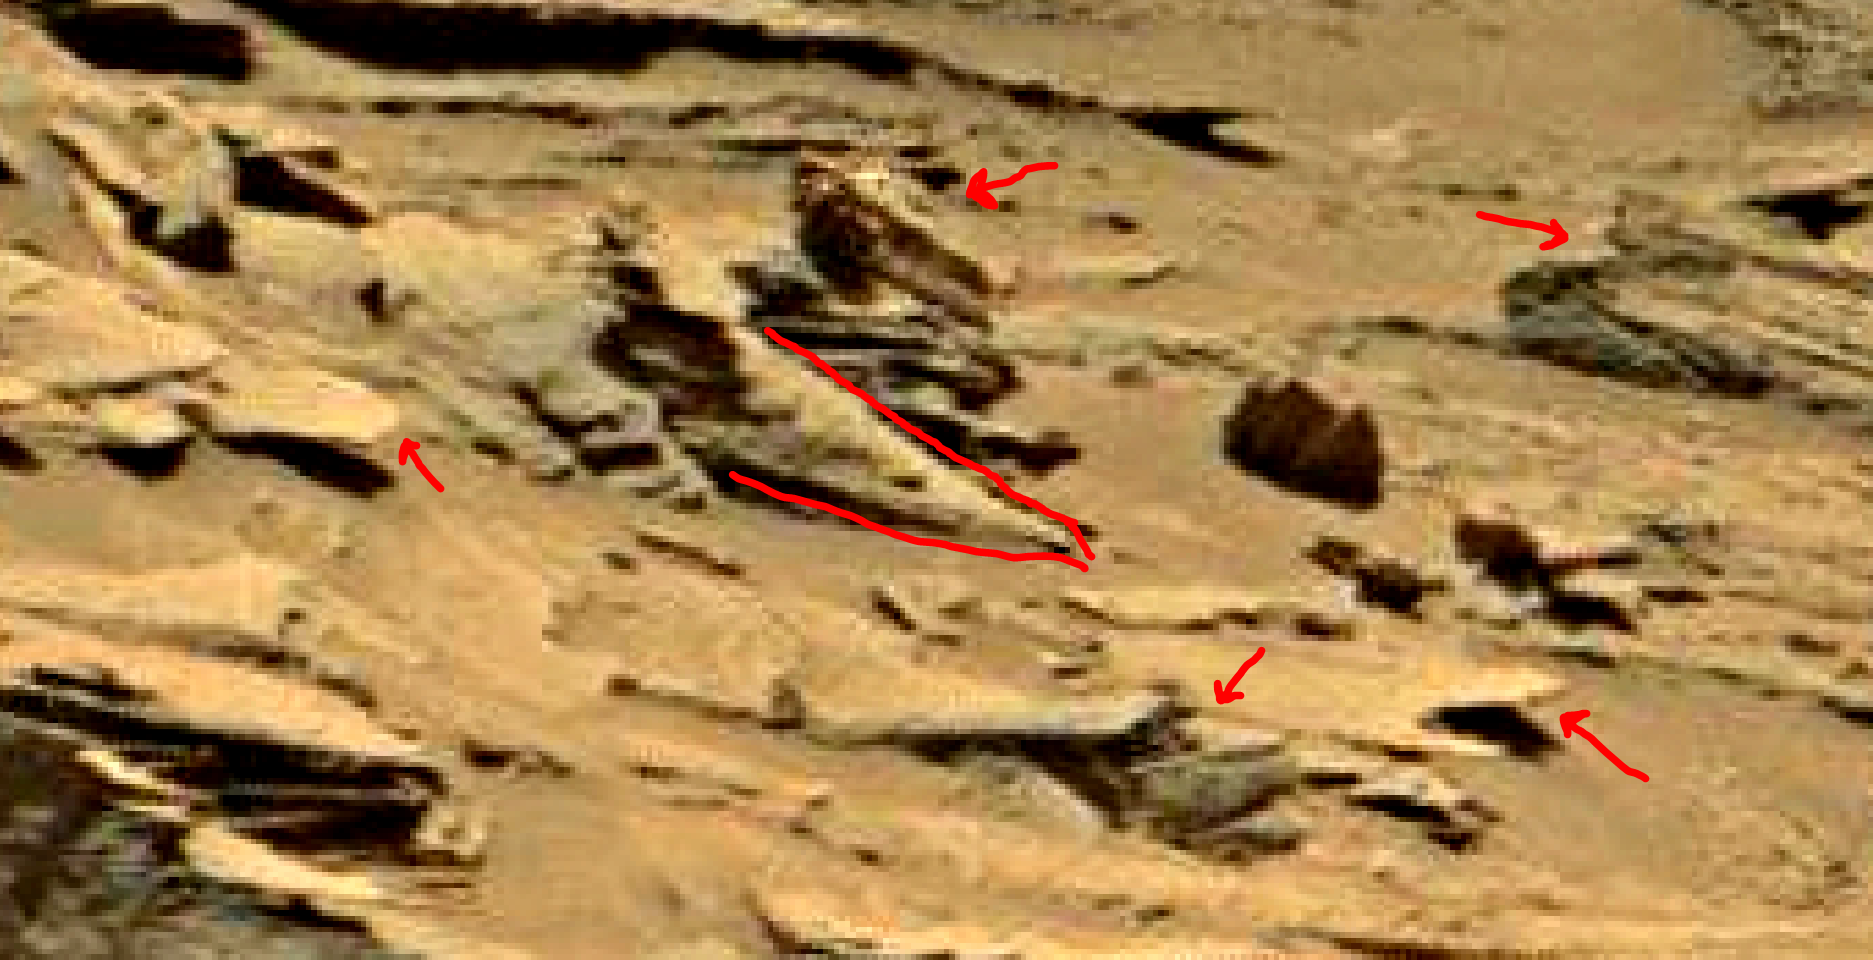 mars sol 1353 anomaly-artifacts 29a was life on mars